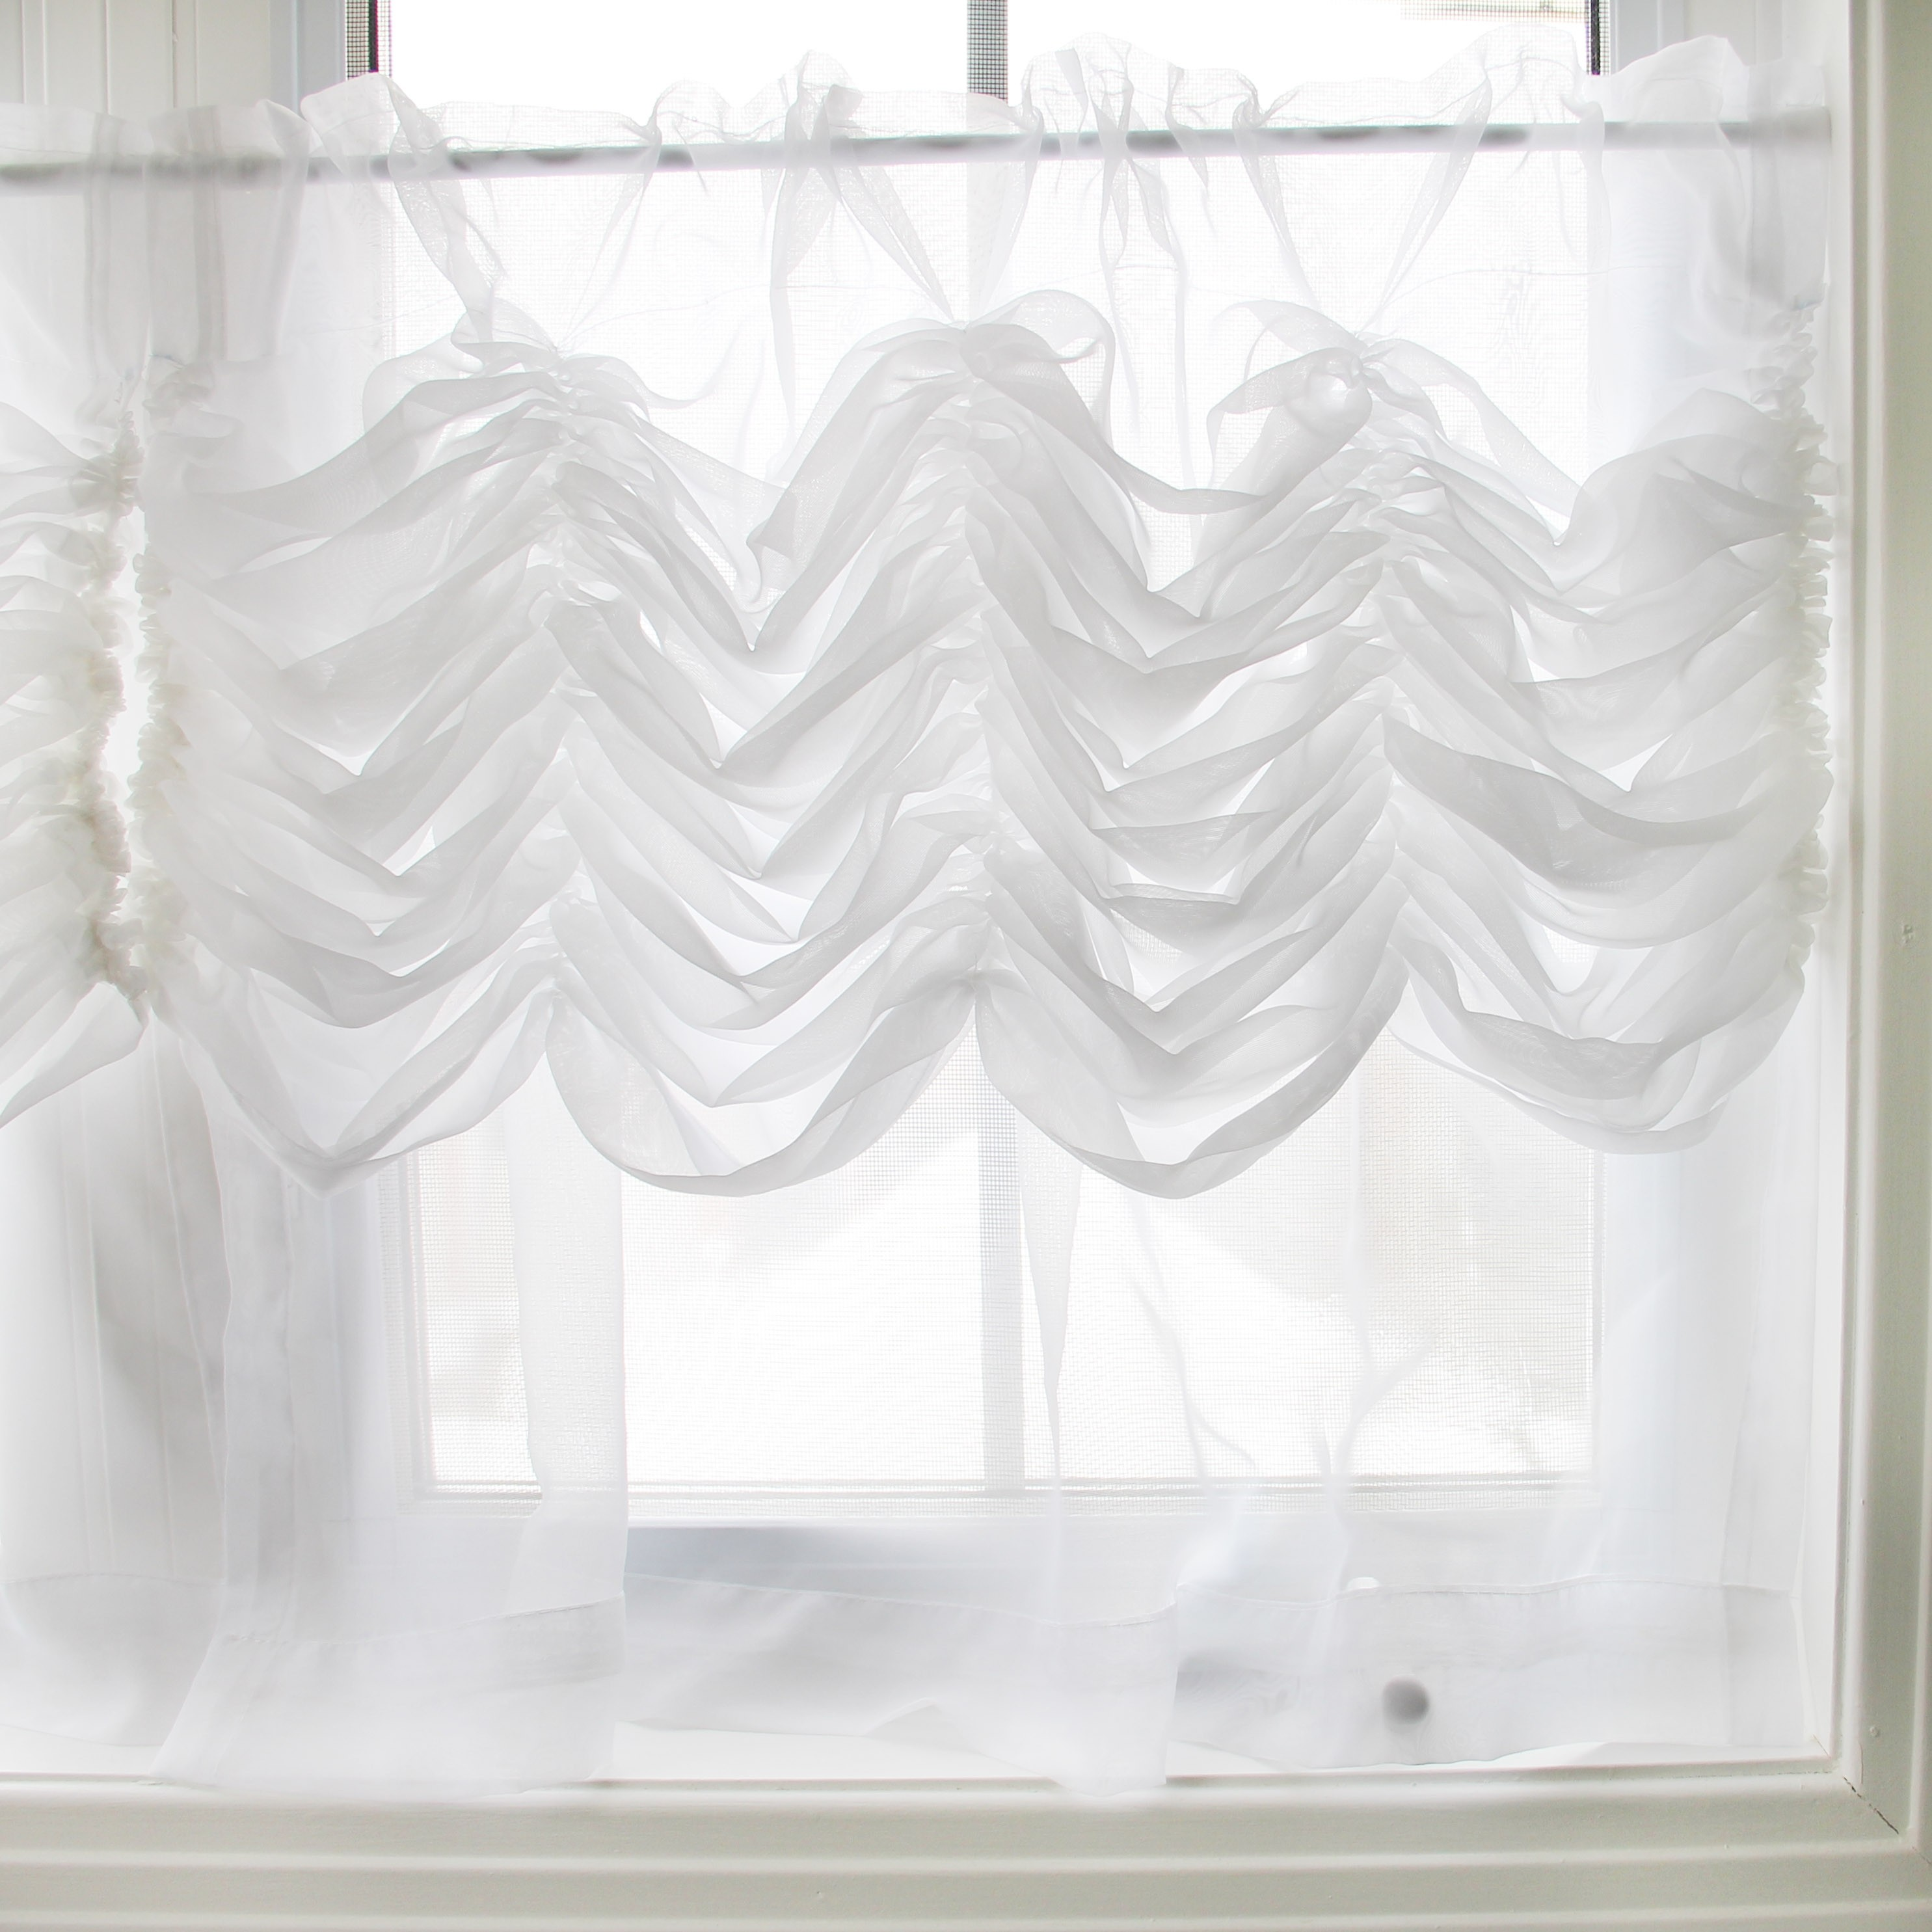 shade aqua valance relaxed stationary rico fabric non white roman operable pin in custom embroidered cottage